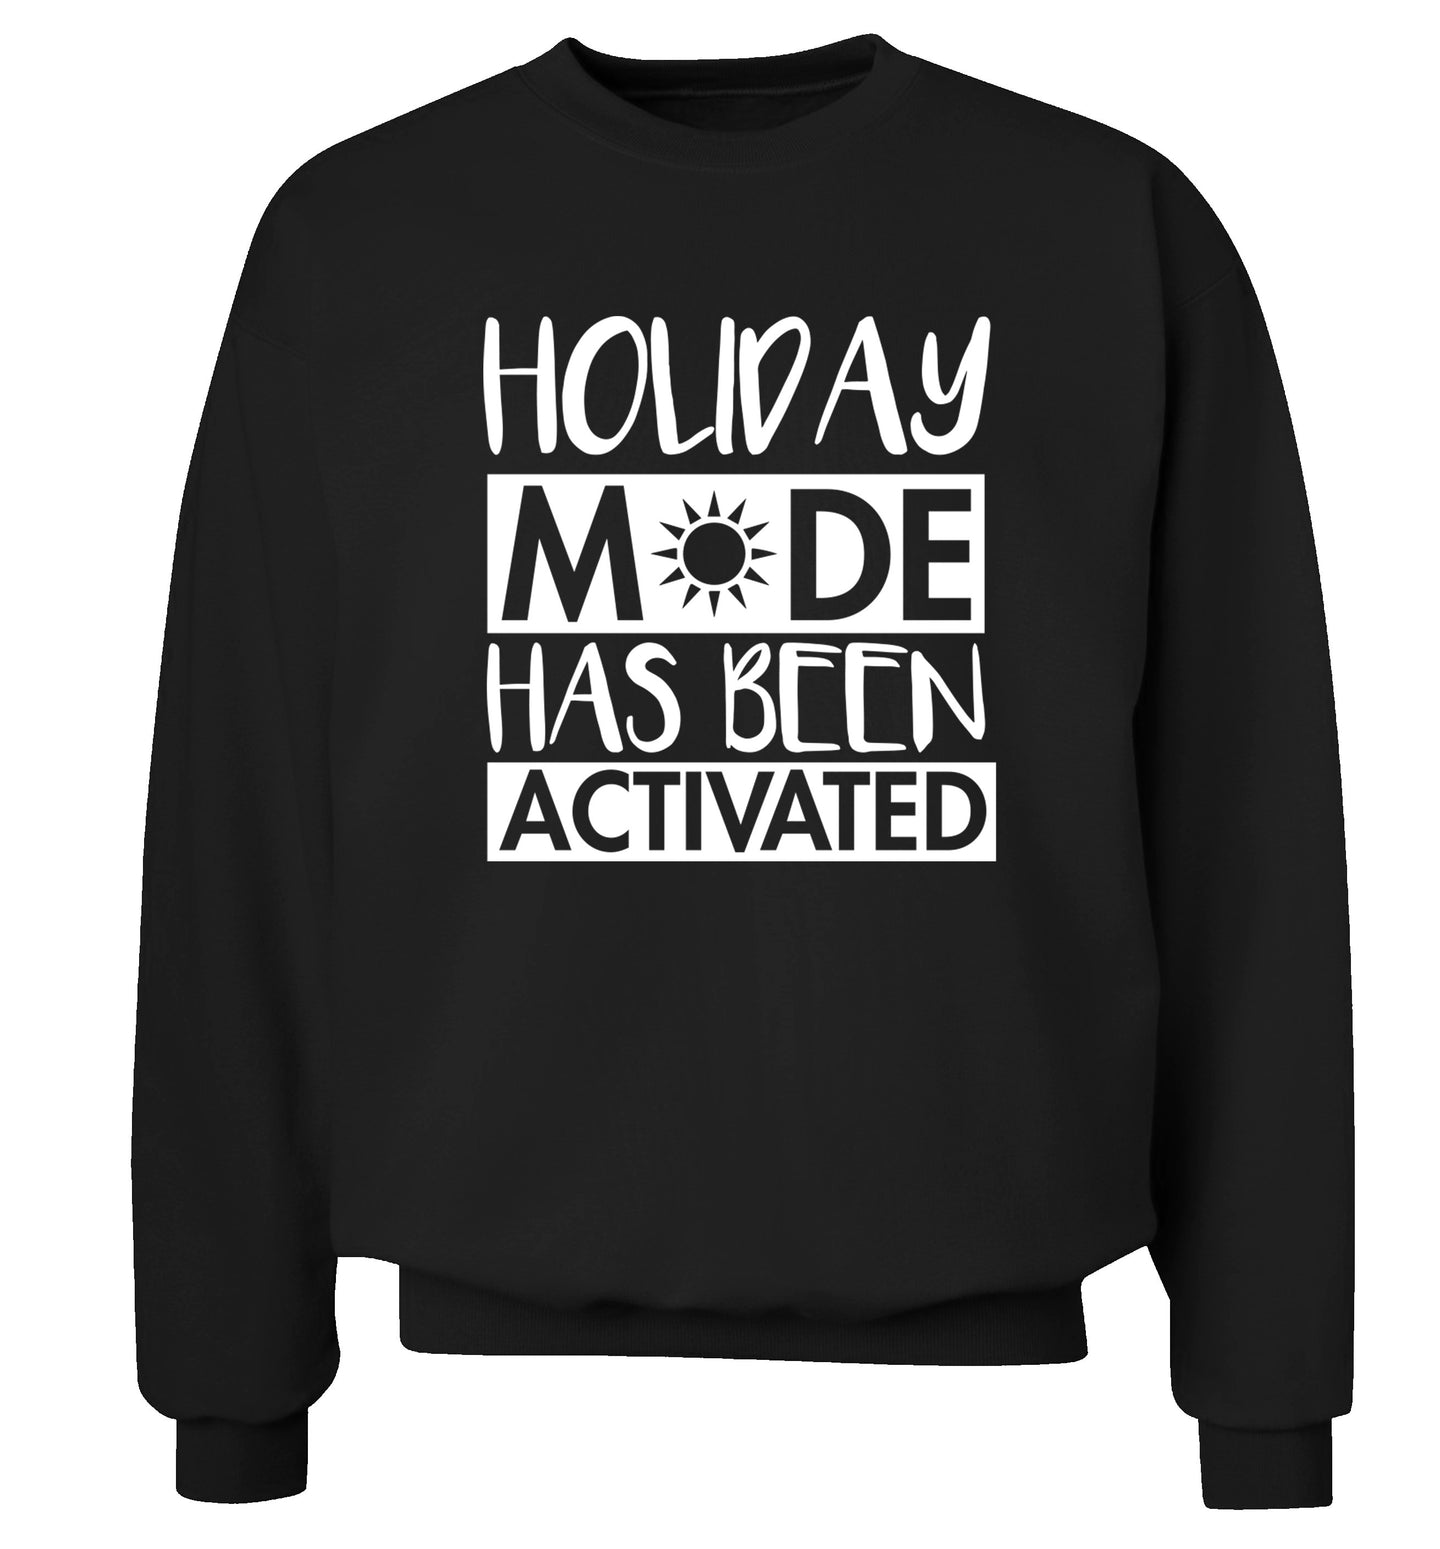 Holiday mode has been activated Adult's unisex black Sweater 2XL